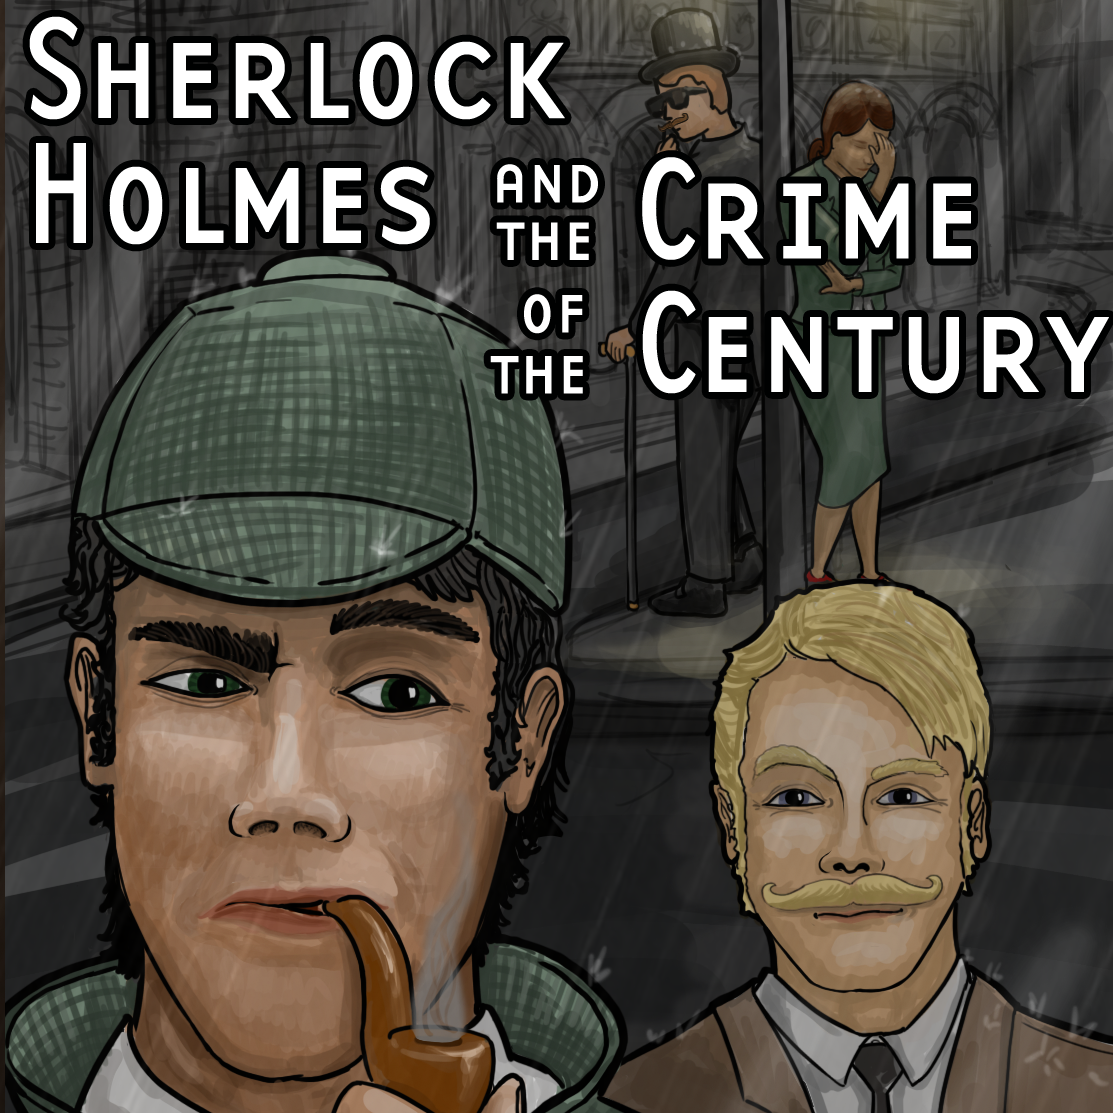 Sherlock Holmes and the Crime of the Century